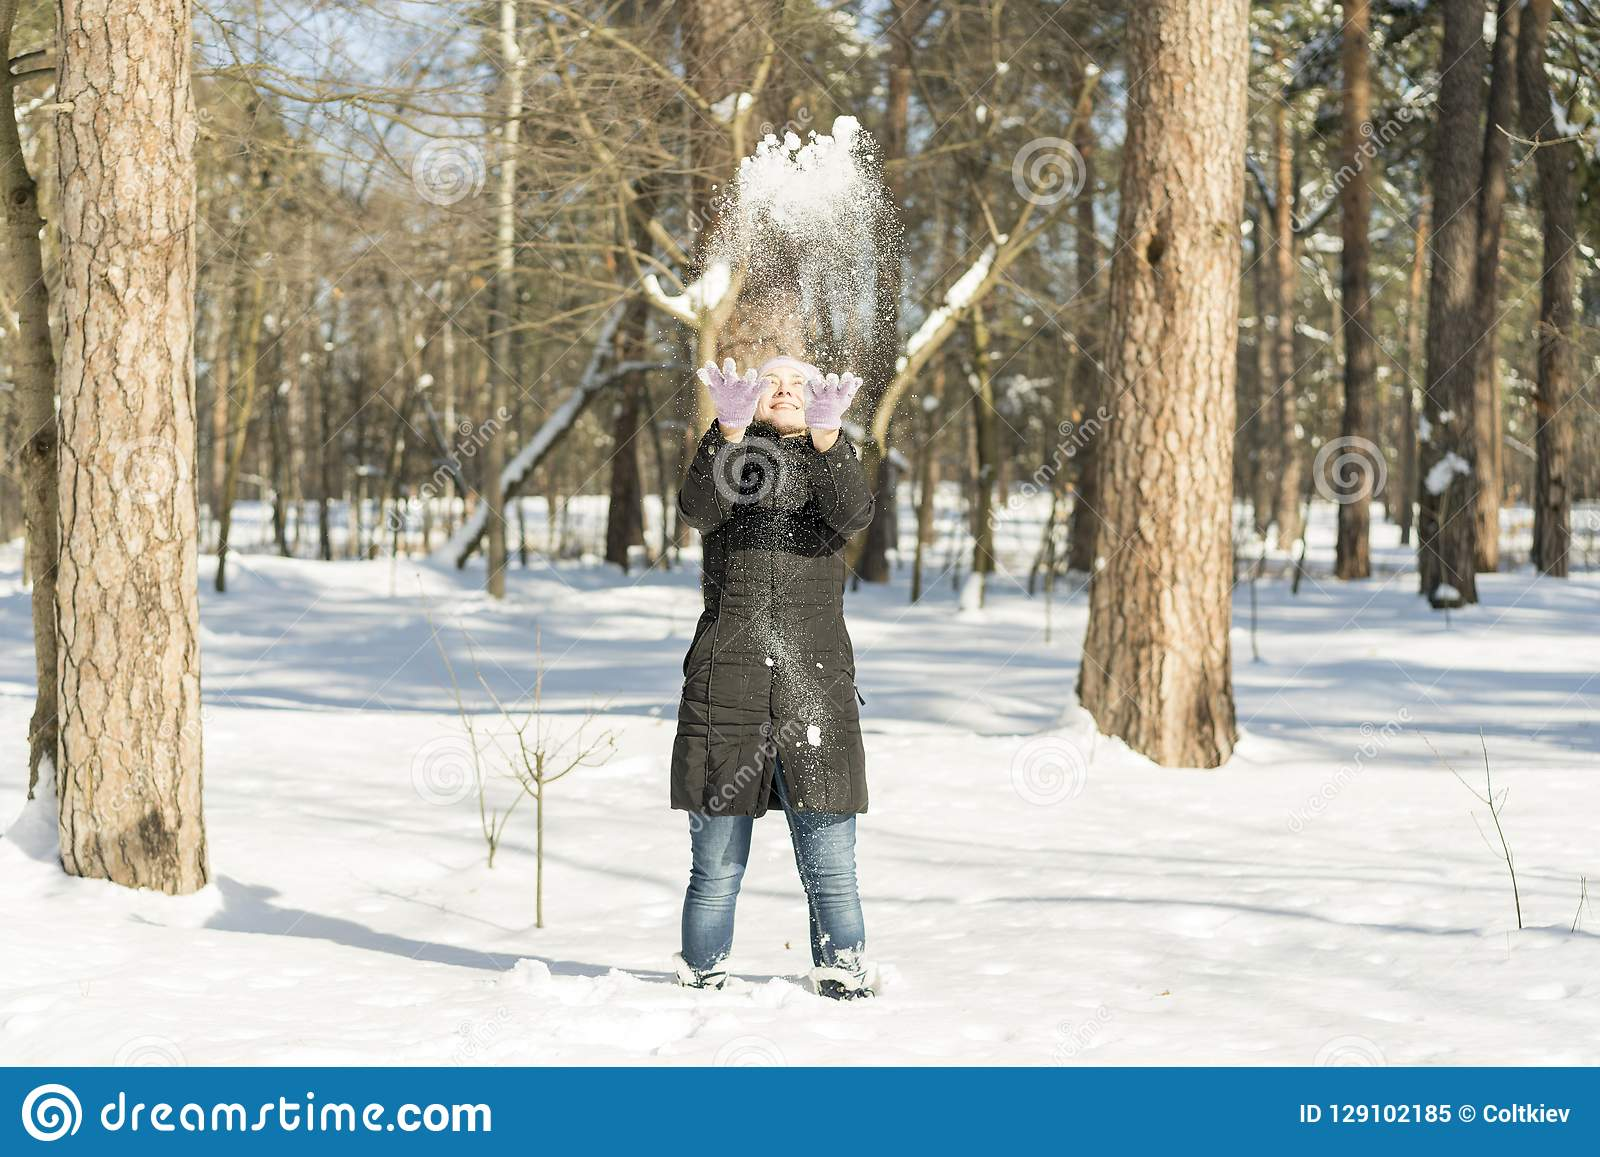 Winter snow fight happy girl throwing snow playing outside. Joyous young woman having fun in nature forest park on snowy day weari